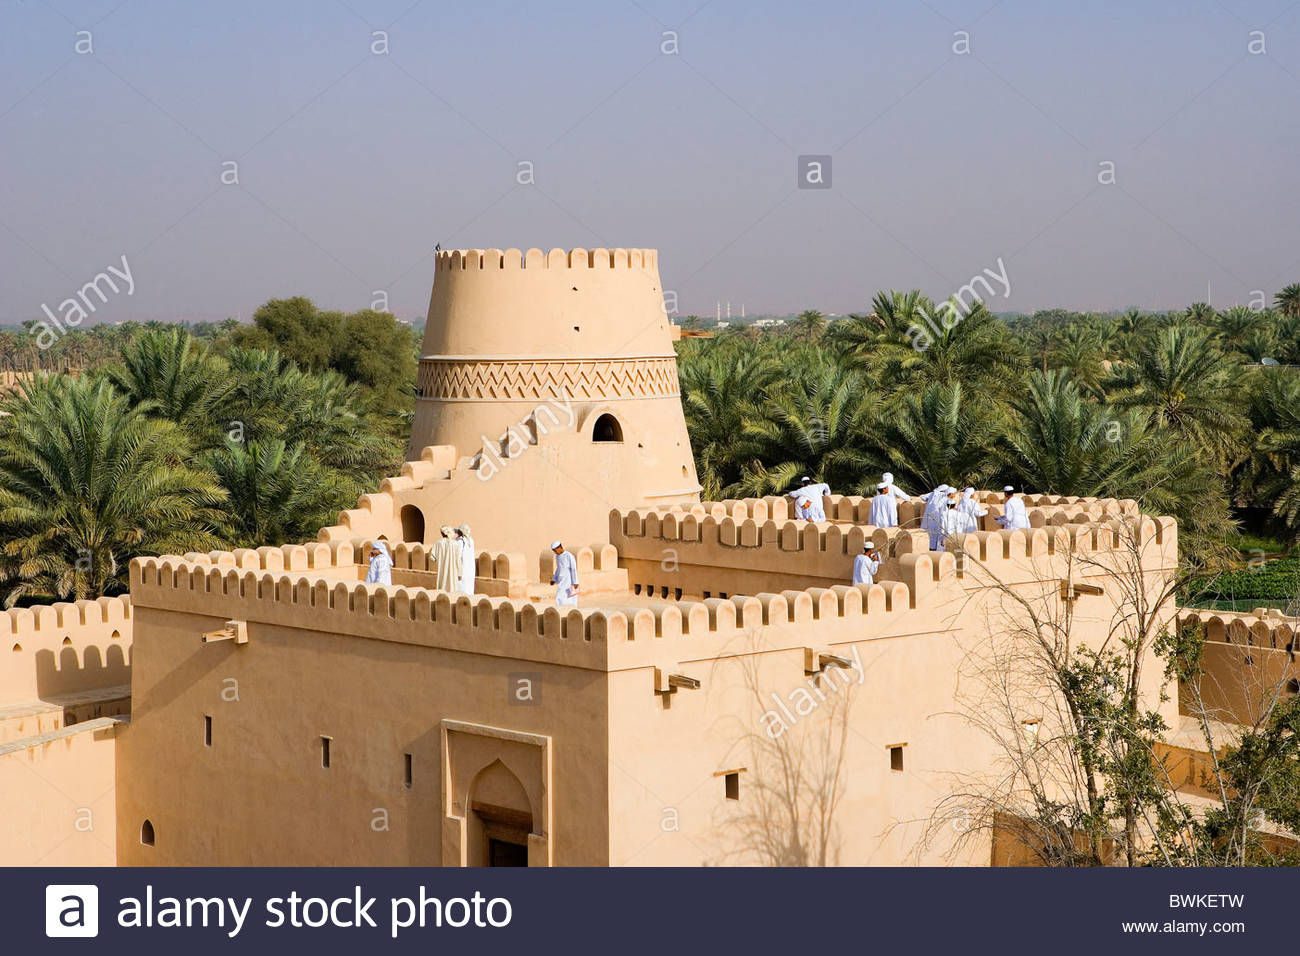 Buraimi Fort Buraimi, Oman Arabia East Buraimi town city Al Khandaq fort fortress castle ...